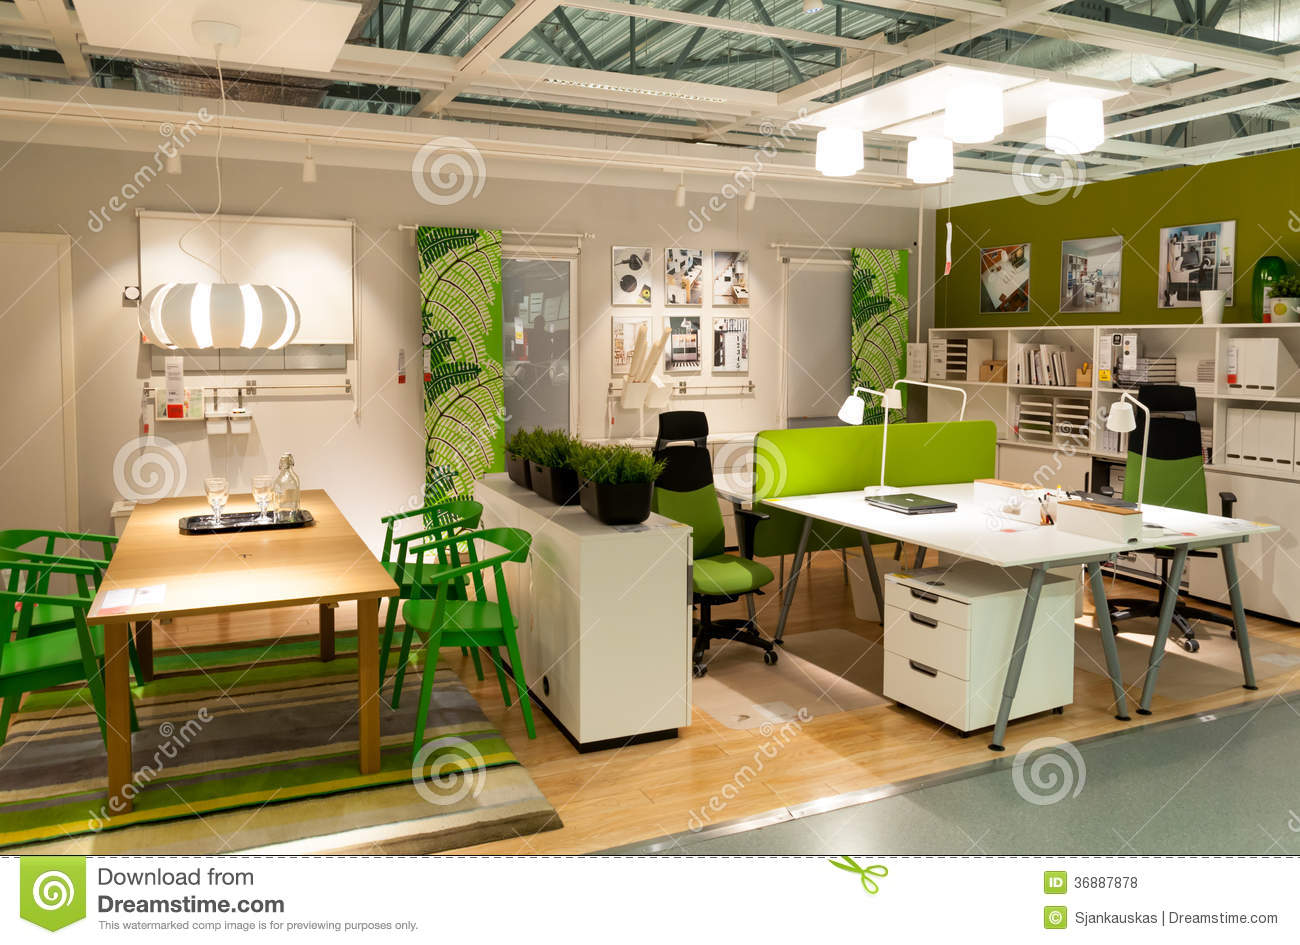 Emejing catalogo ikea accessori cucina ideas ideas for Interni casa